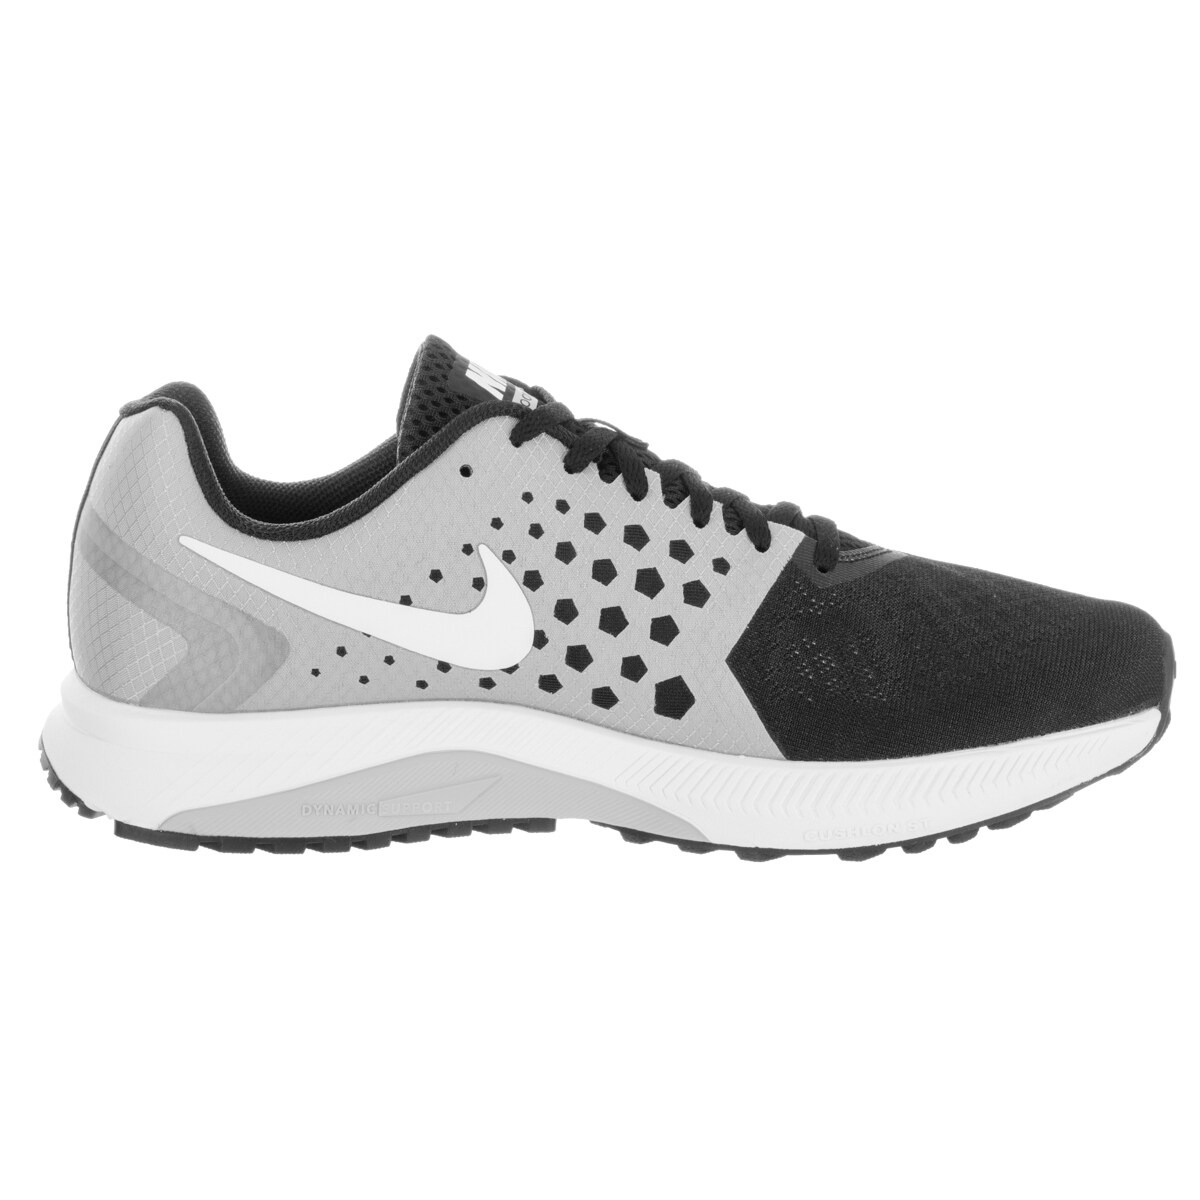 ... 0168c 425d0 Nike Mens Zoom Span Black Running Shoes - Free Shipping  Today - Overstock ... 0ded8a0d6